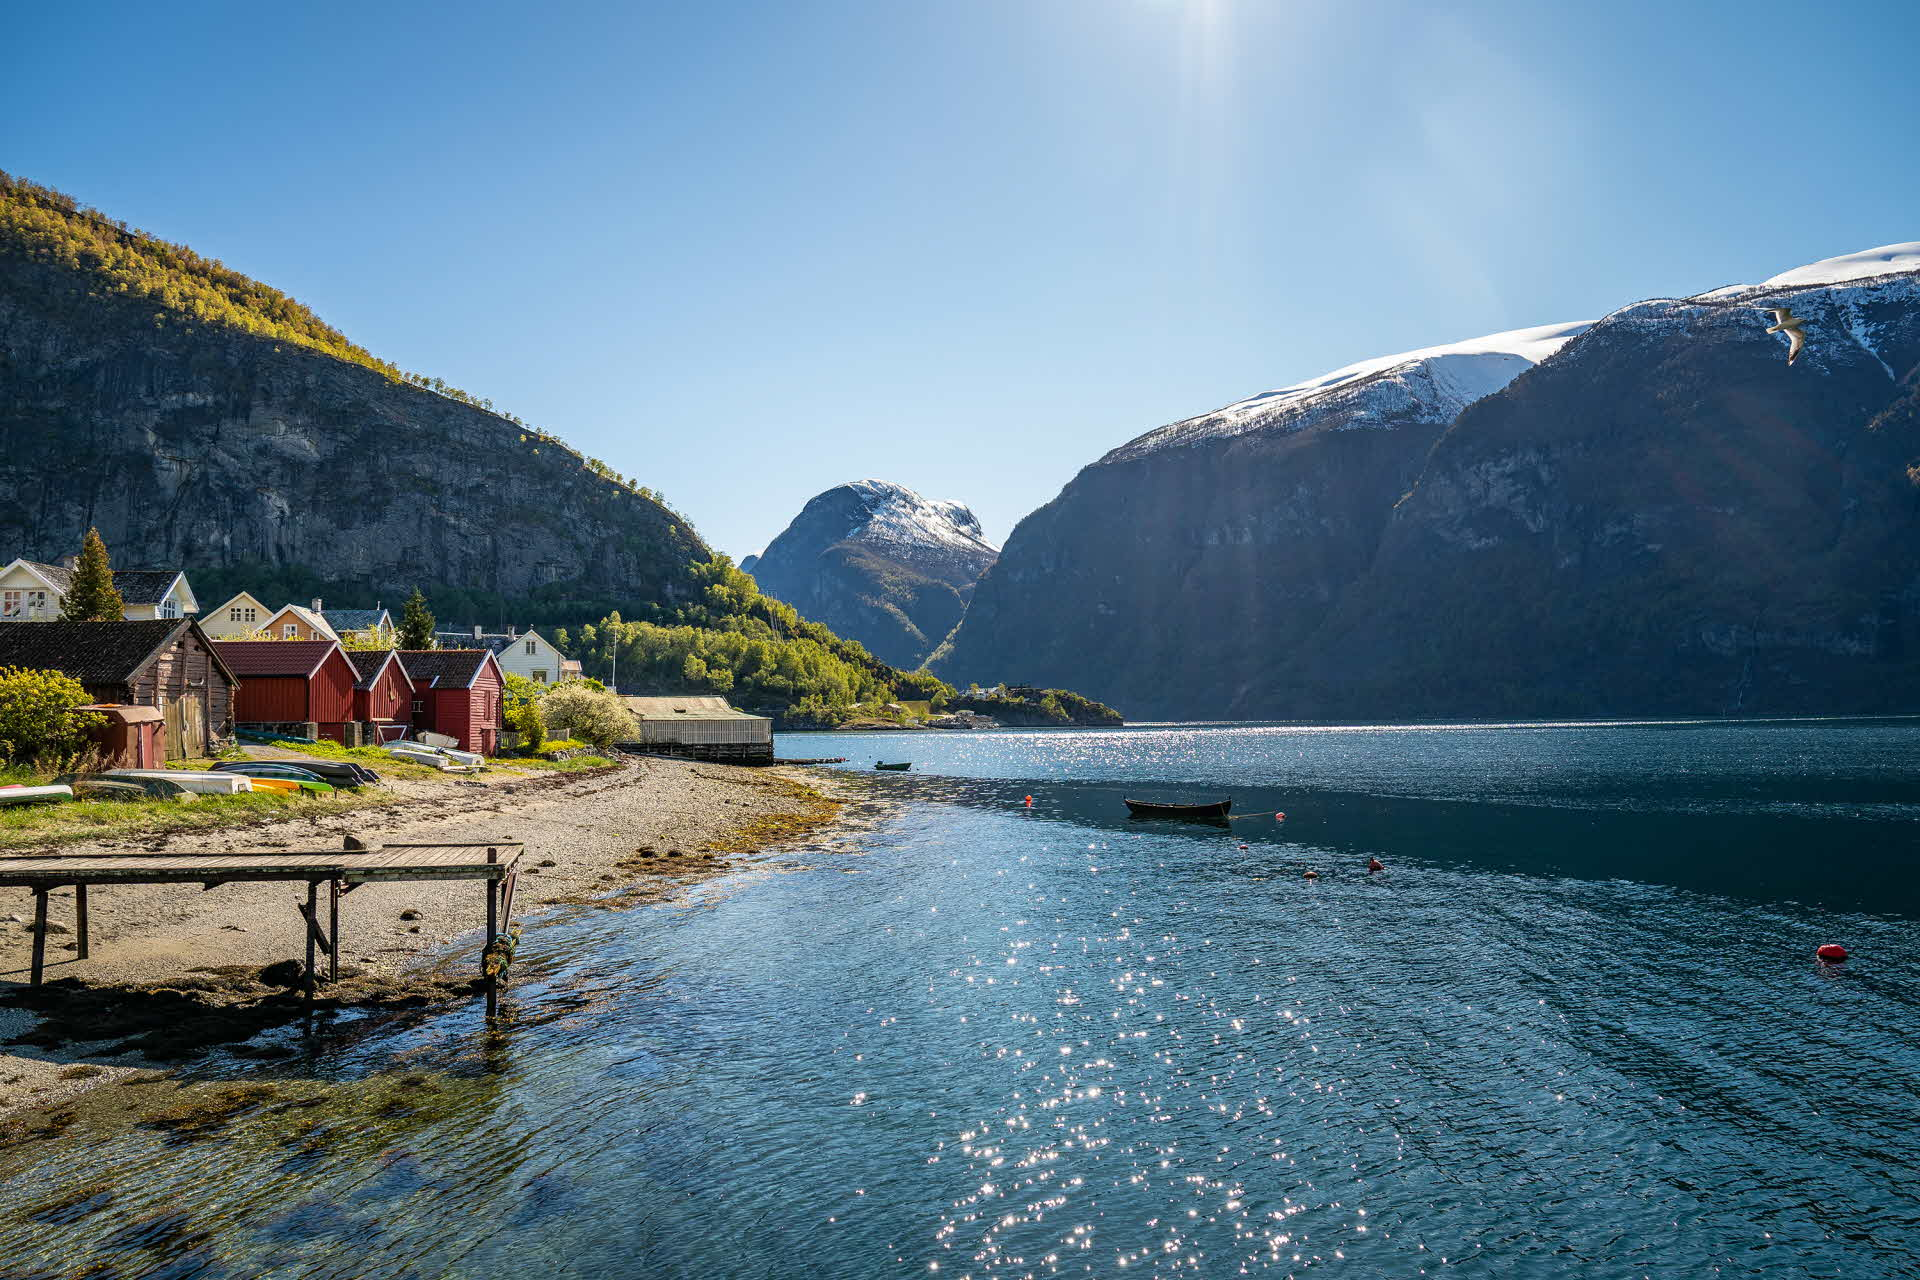 Boat houses at the shoreline by the UNESCO listed Aurlandsfjord in summer. Lush mountain sides with snow-capped mountains